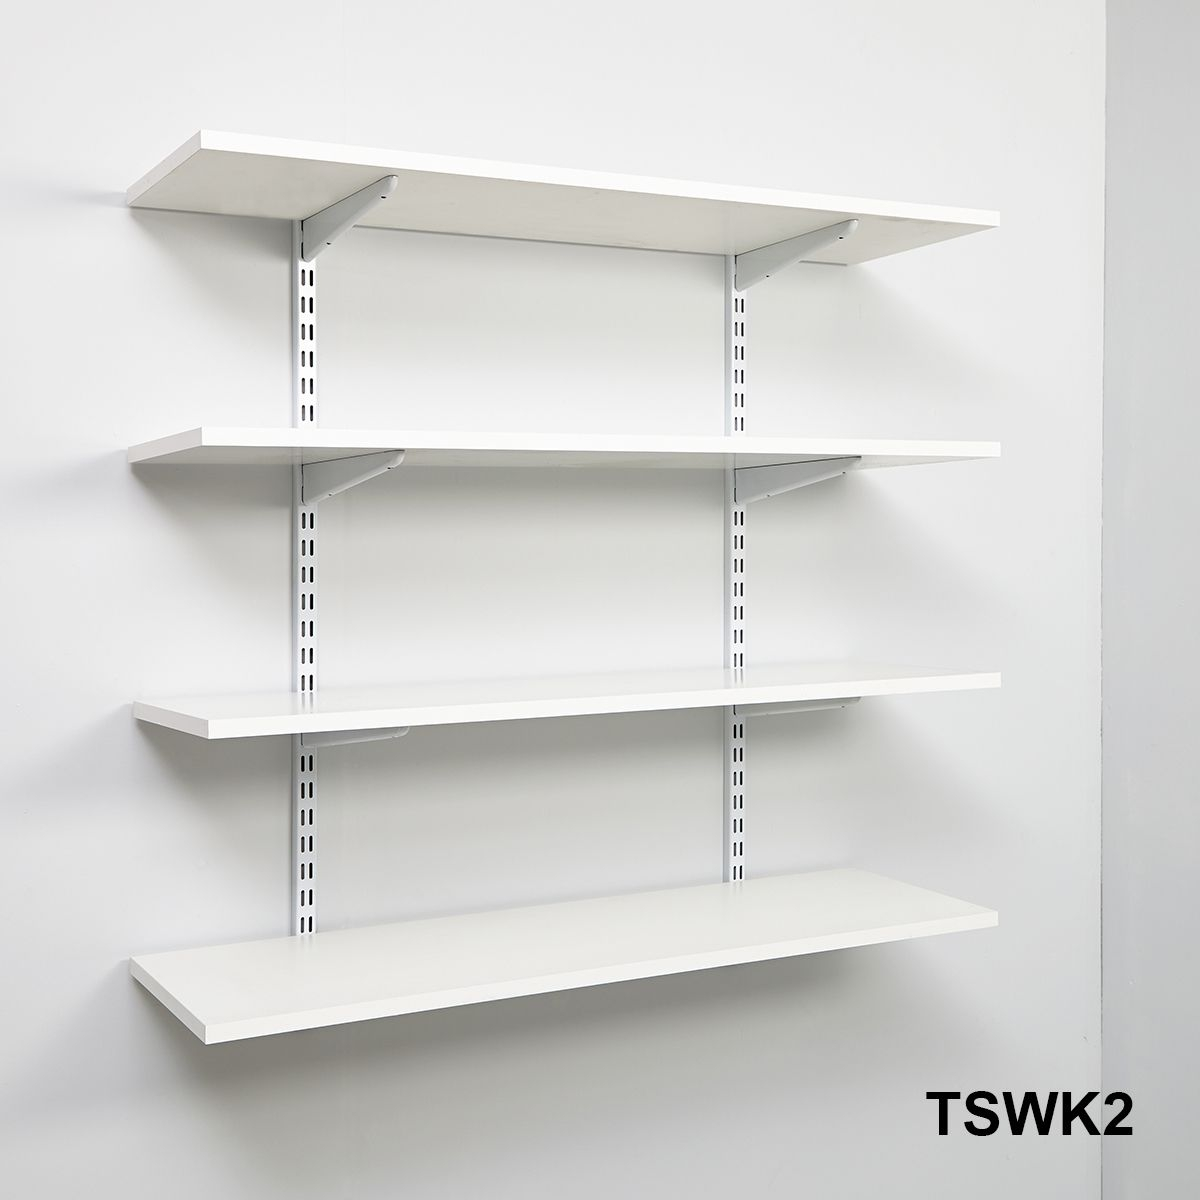 Industrial Wall Mounted Shelving Wall Mounted Shelves Inside Wall Mounted Shelves (View 6 of 12)